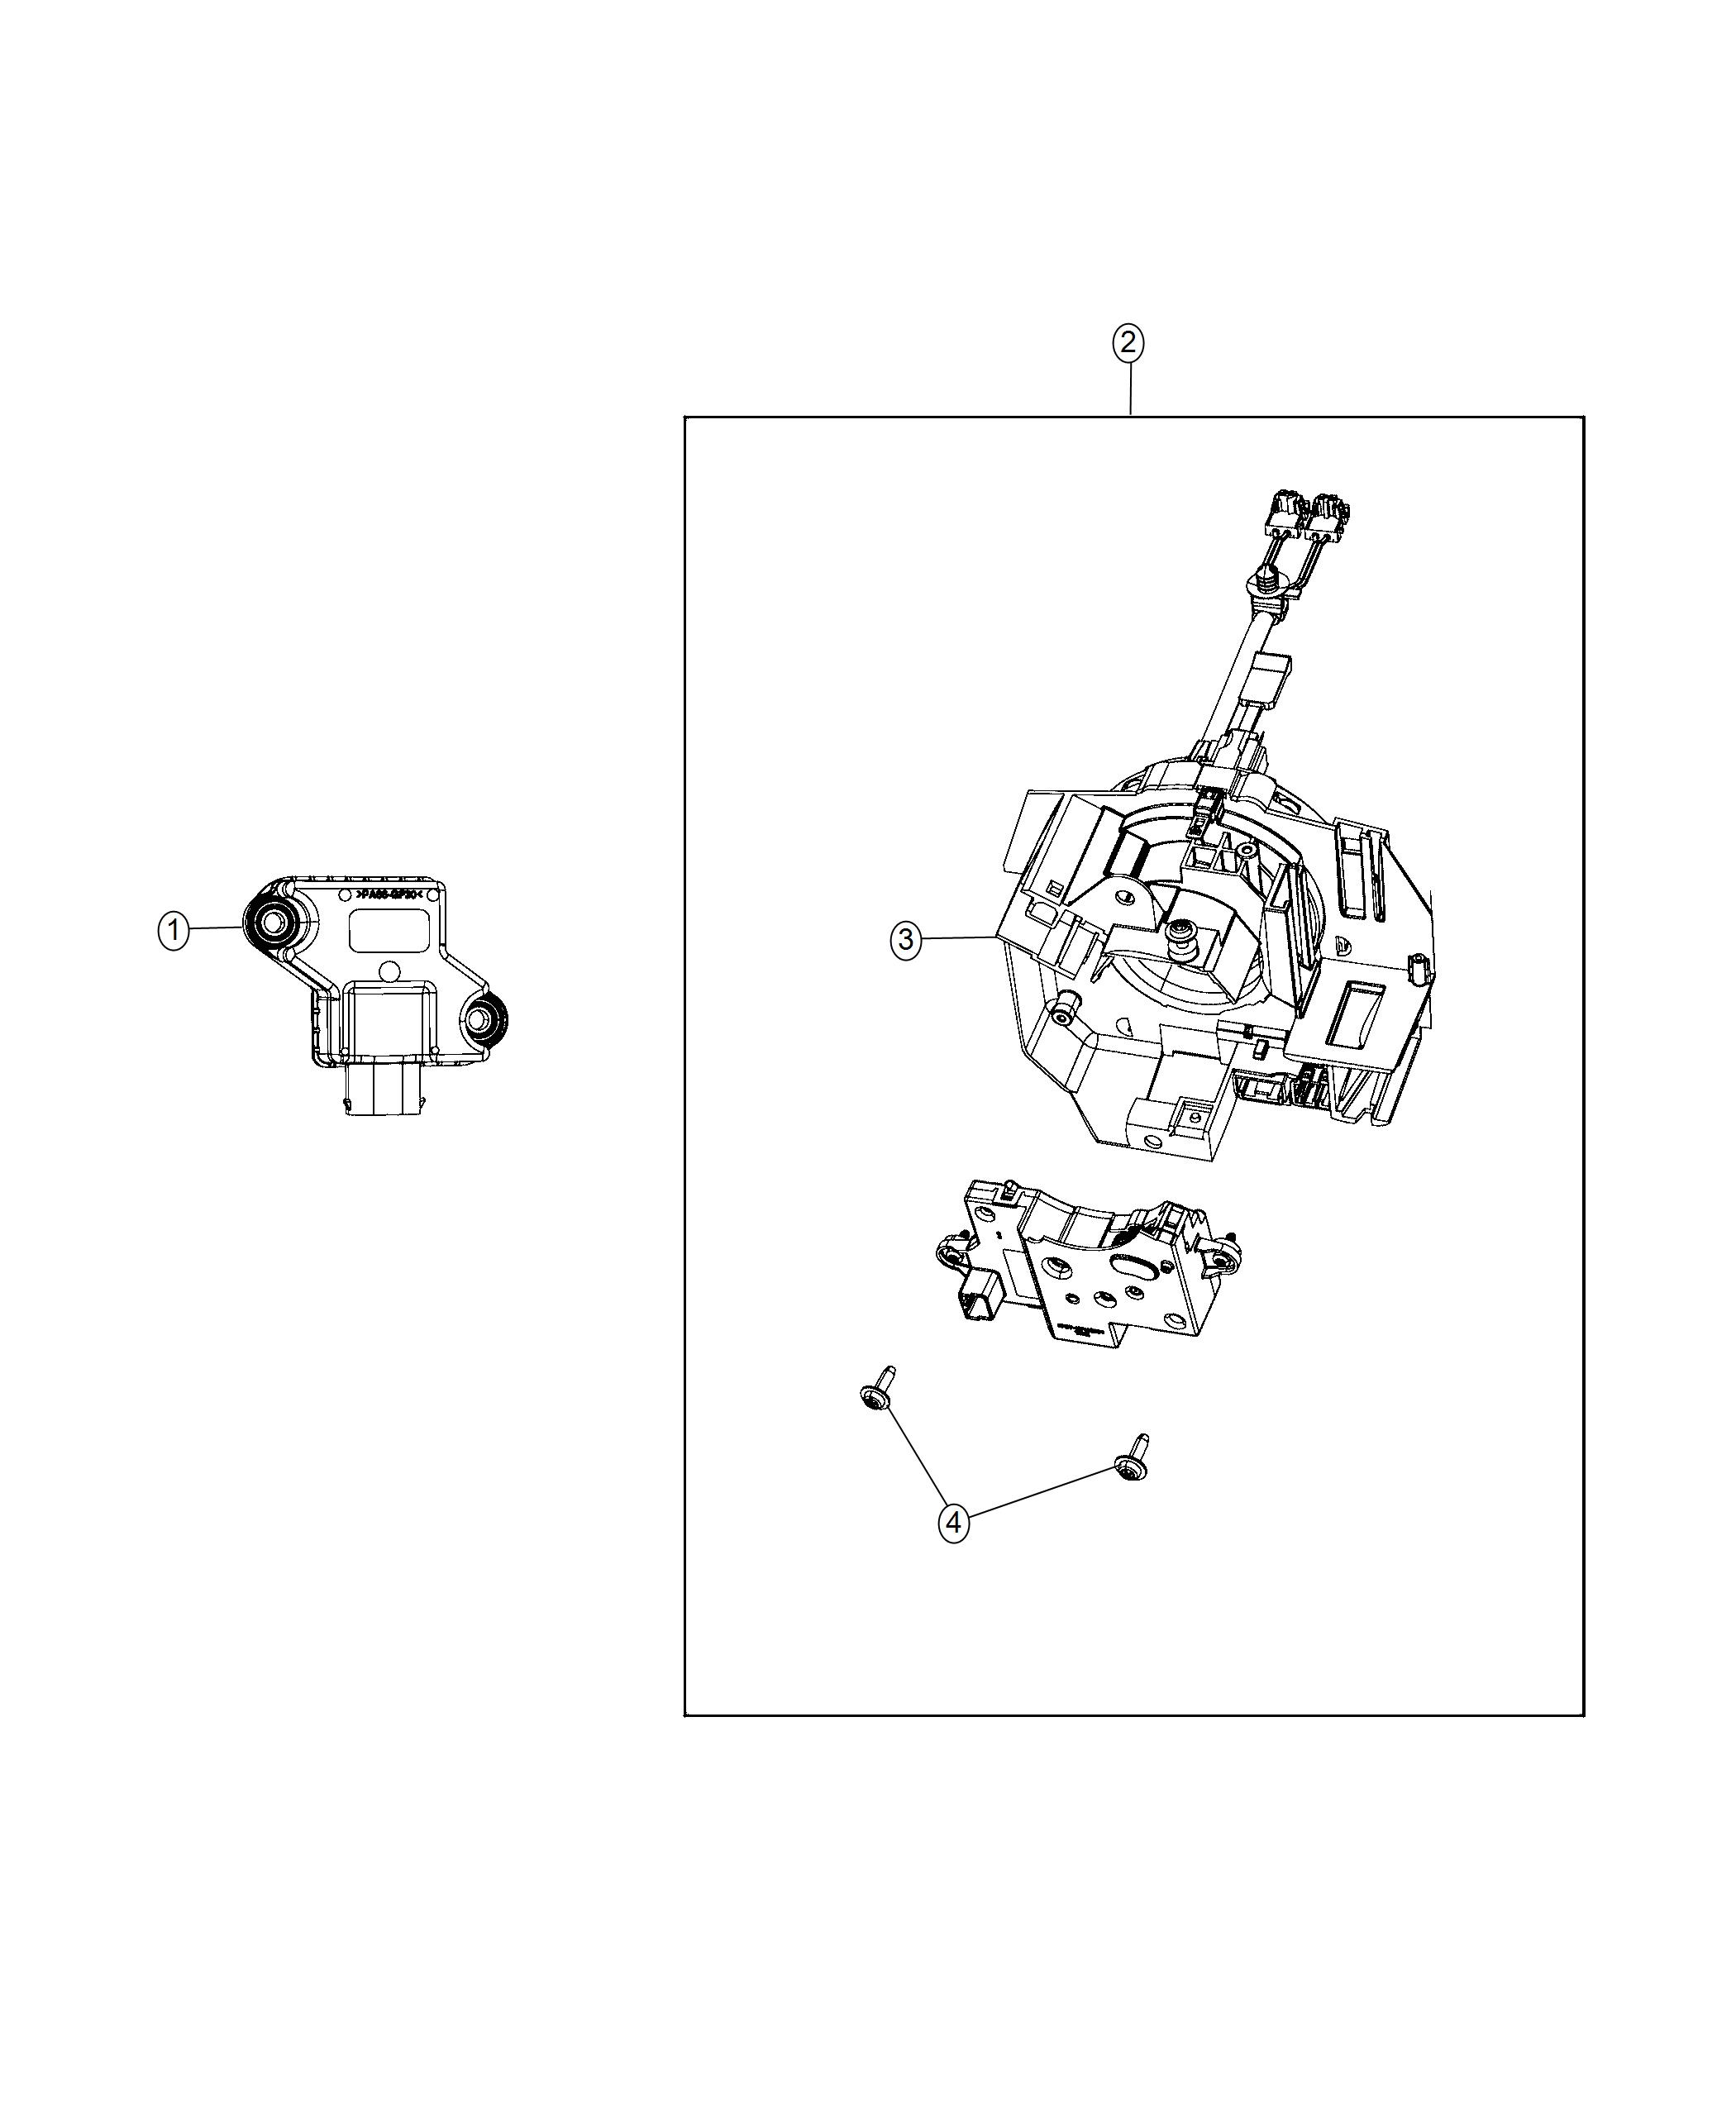 Dodge Ram Sensor Dynamics Used For Lateral